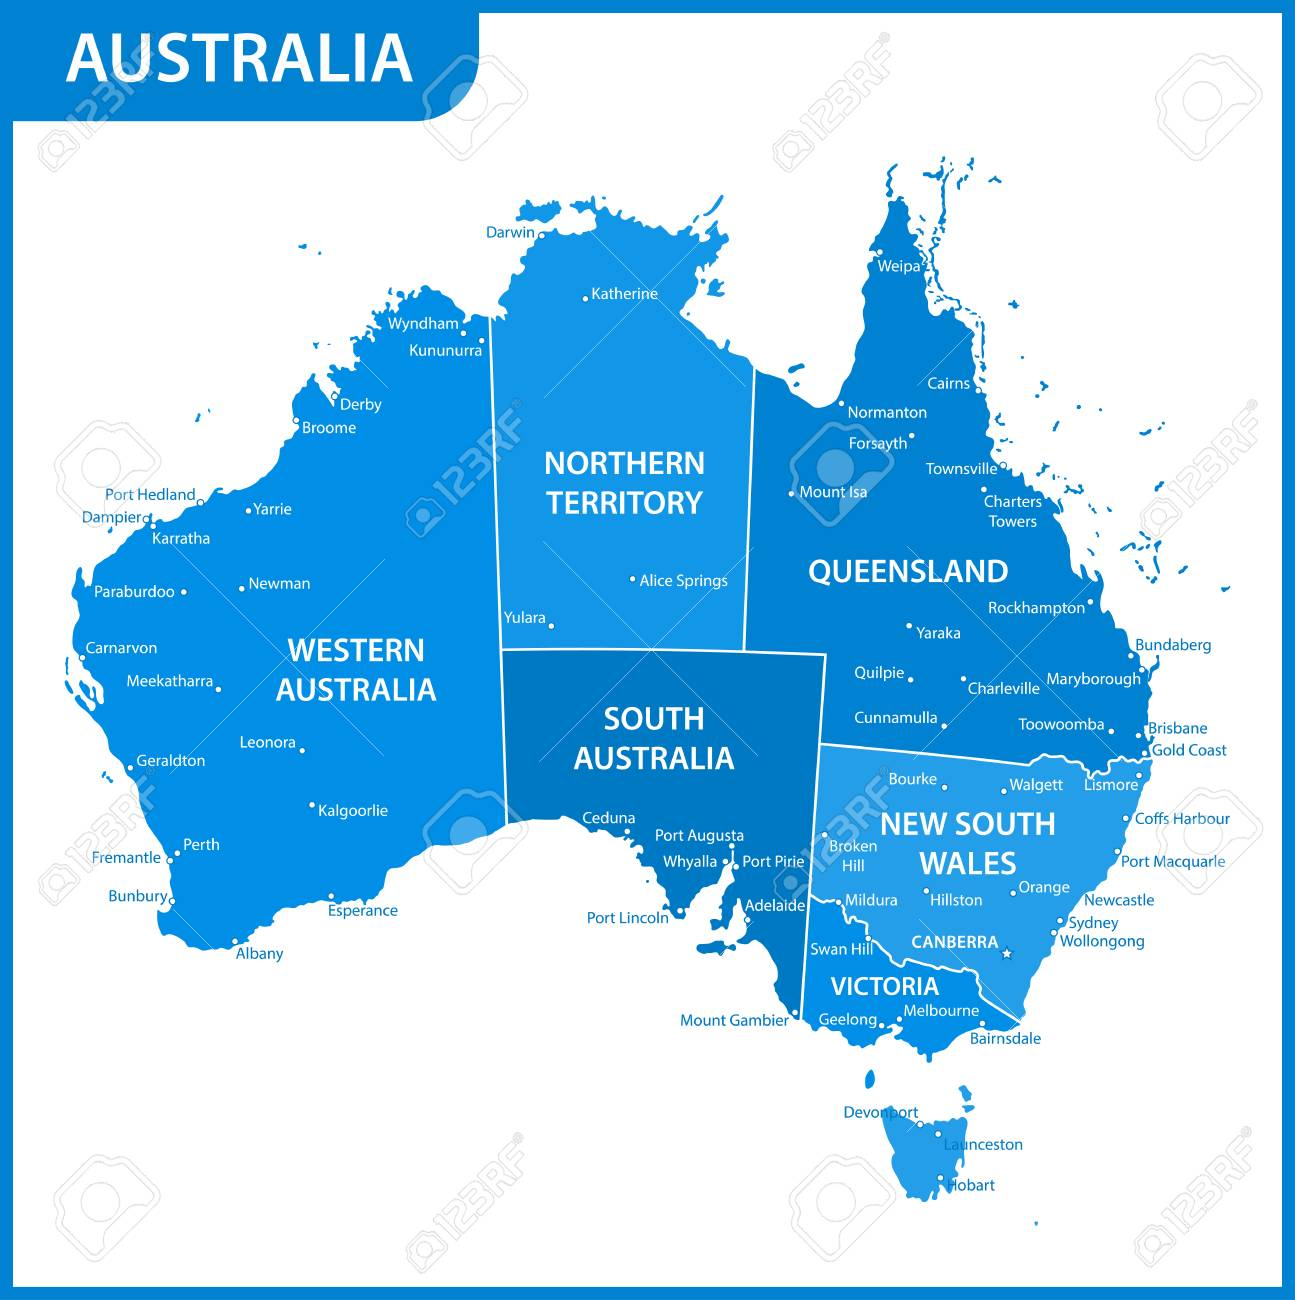 Australia Map States And Cities.The Detailed Map Of The Australia With Regions Or States And